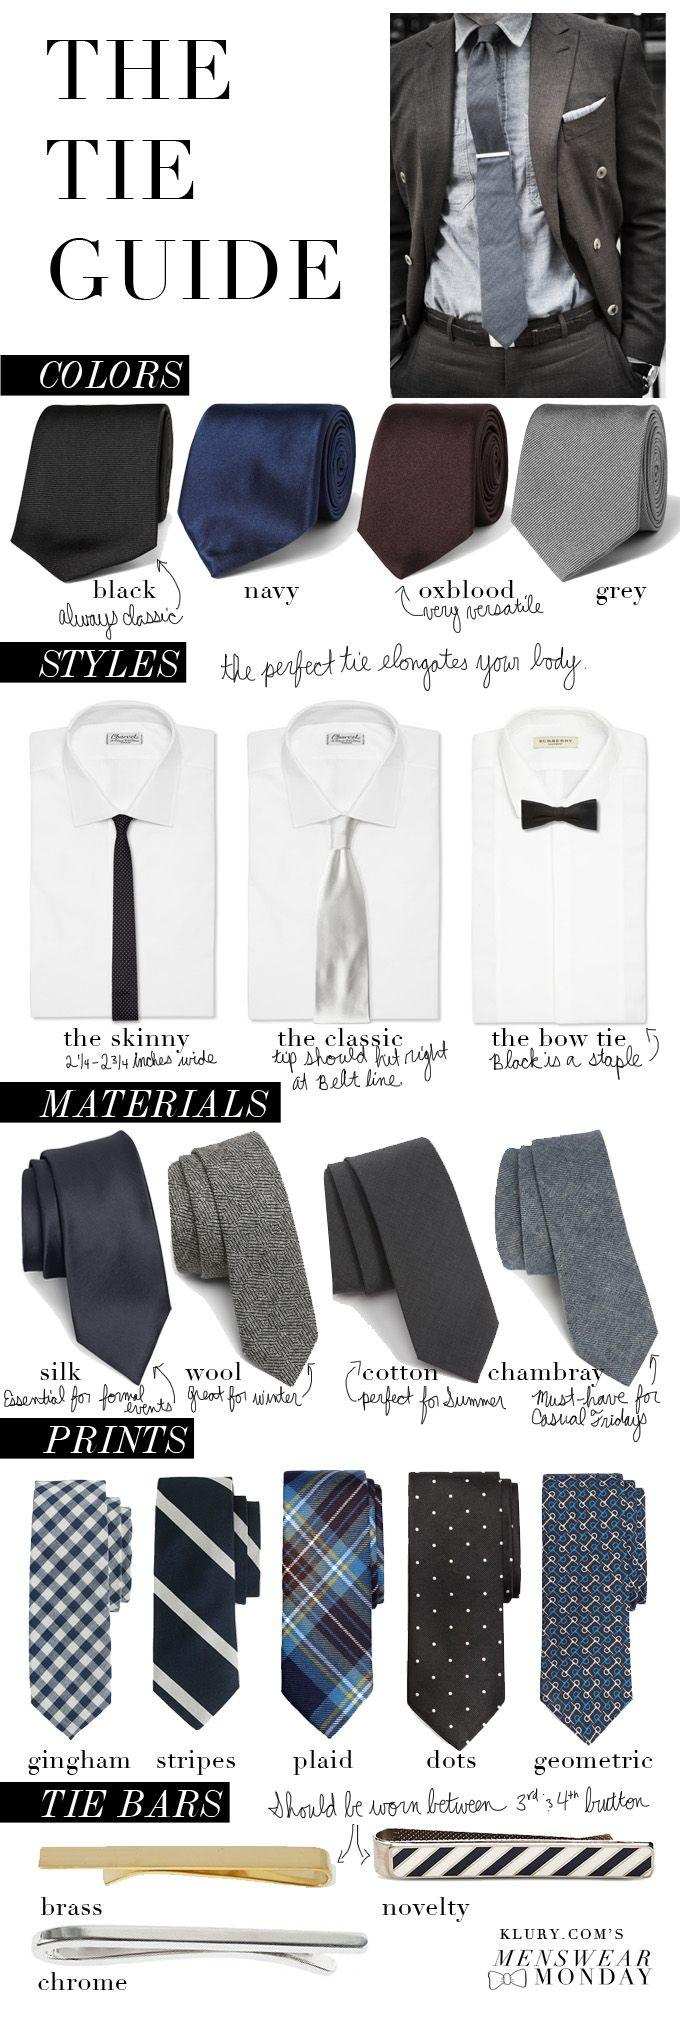 Wedding - The Tie Guide: How To Shop & Wear The Perfect Tie